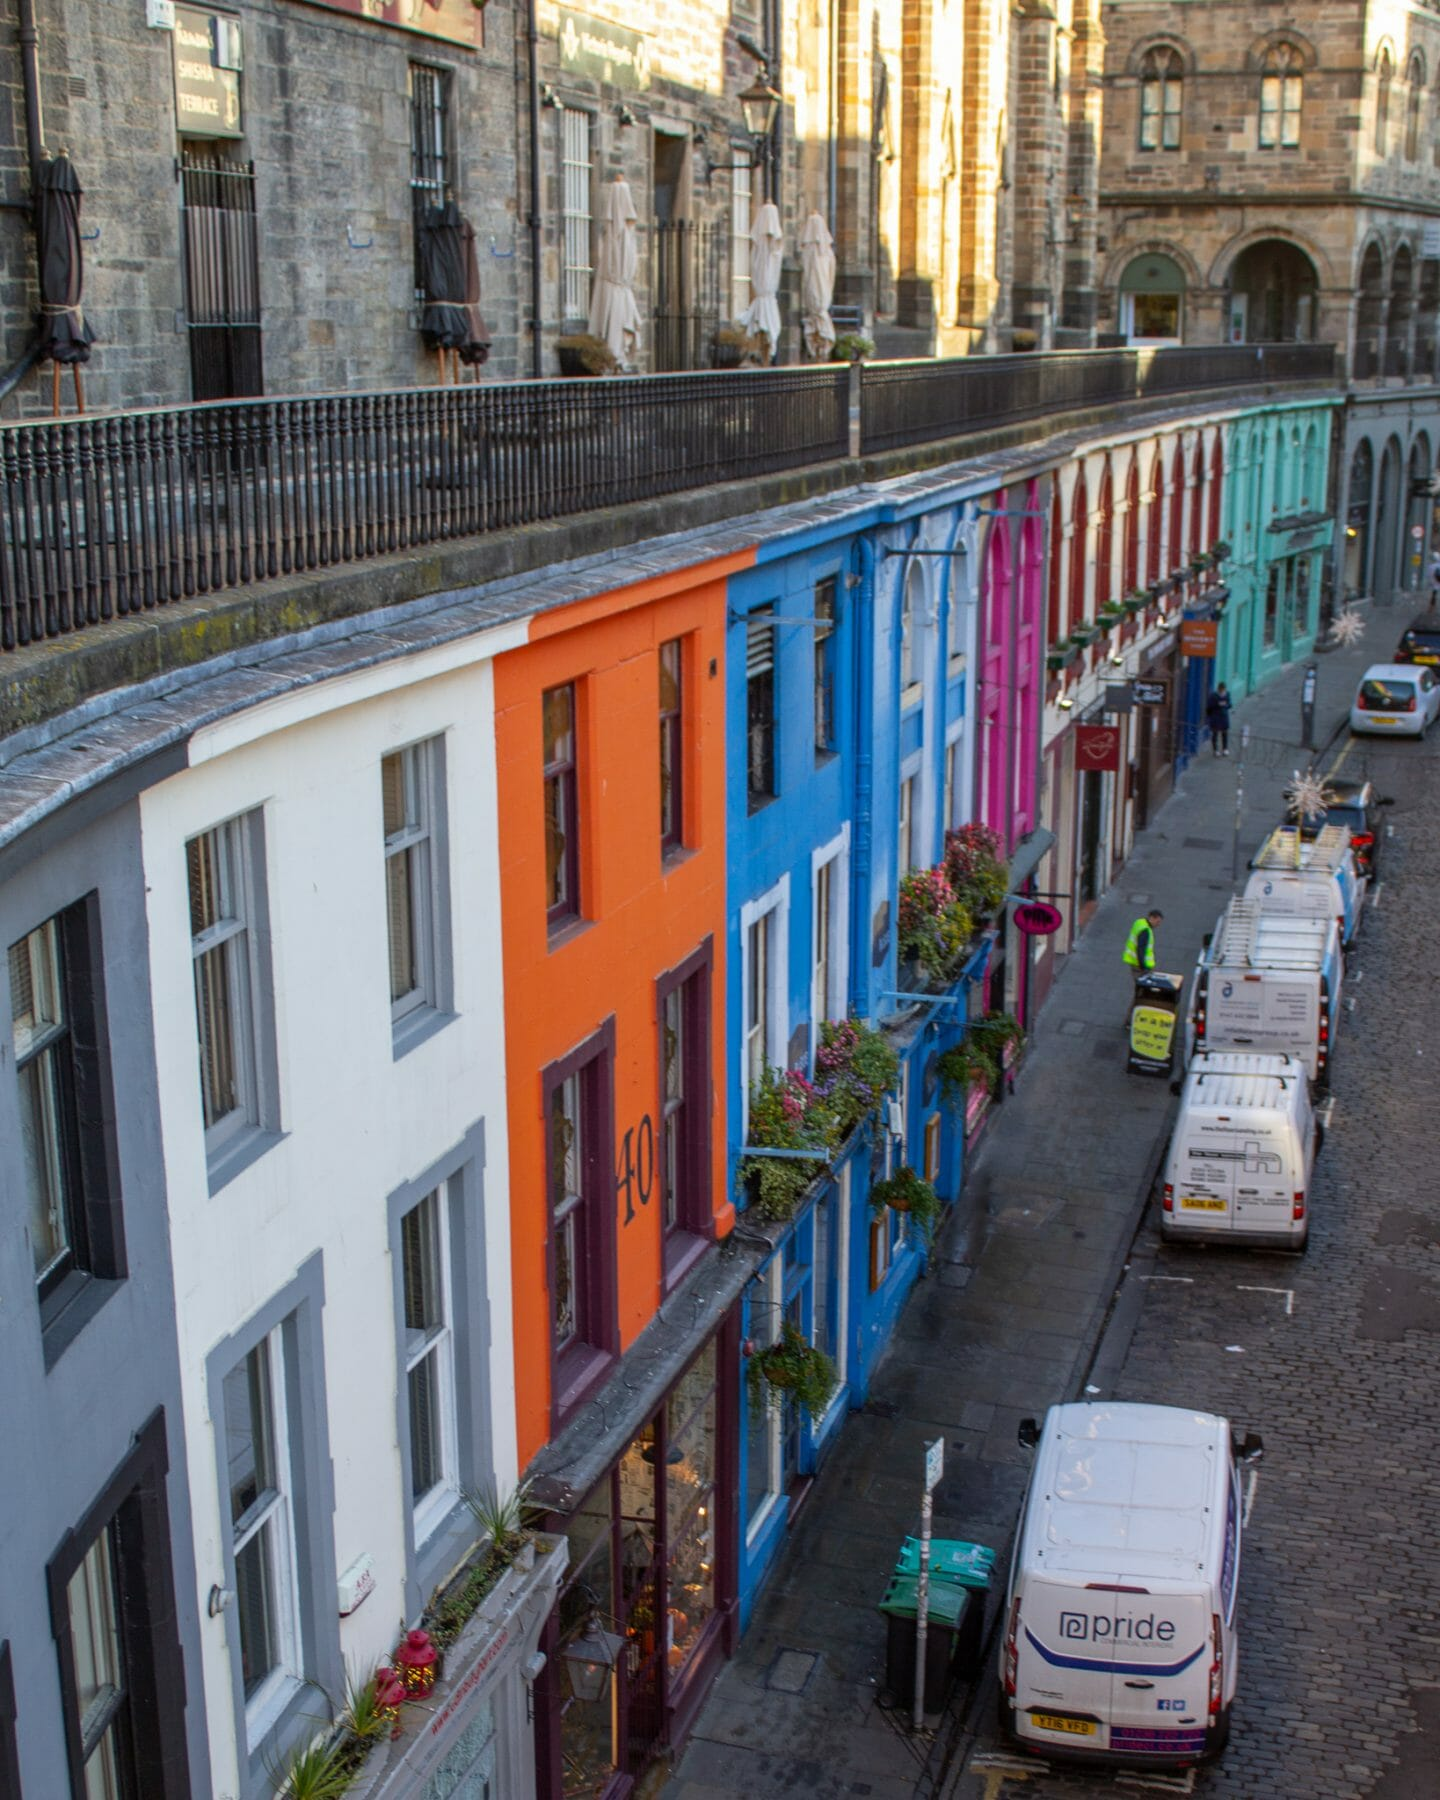 A guide to 48 hours in Edinburgh